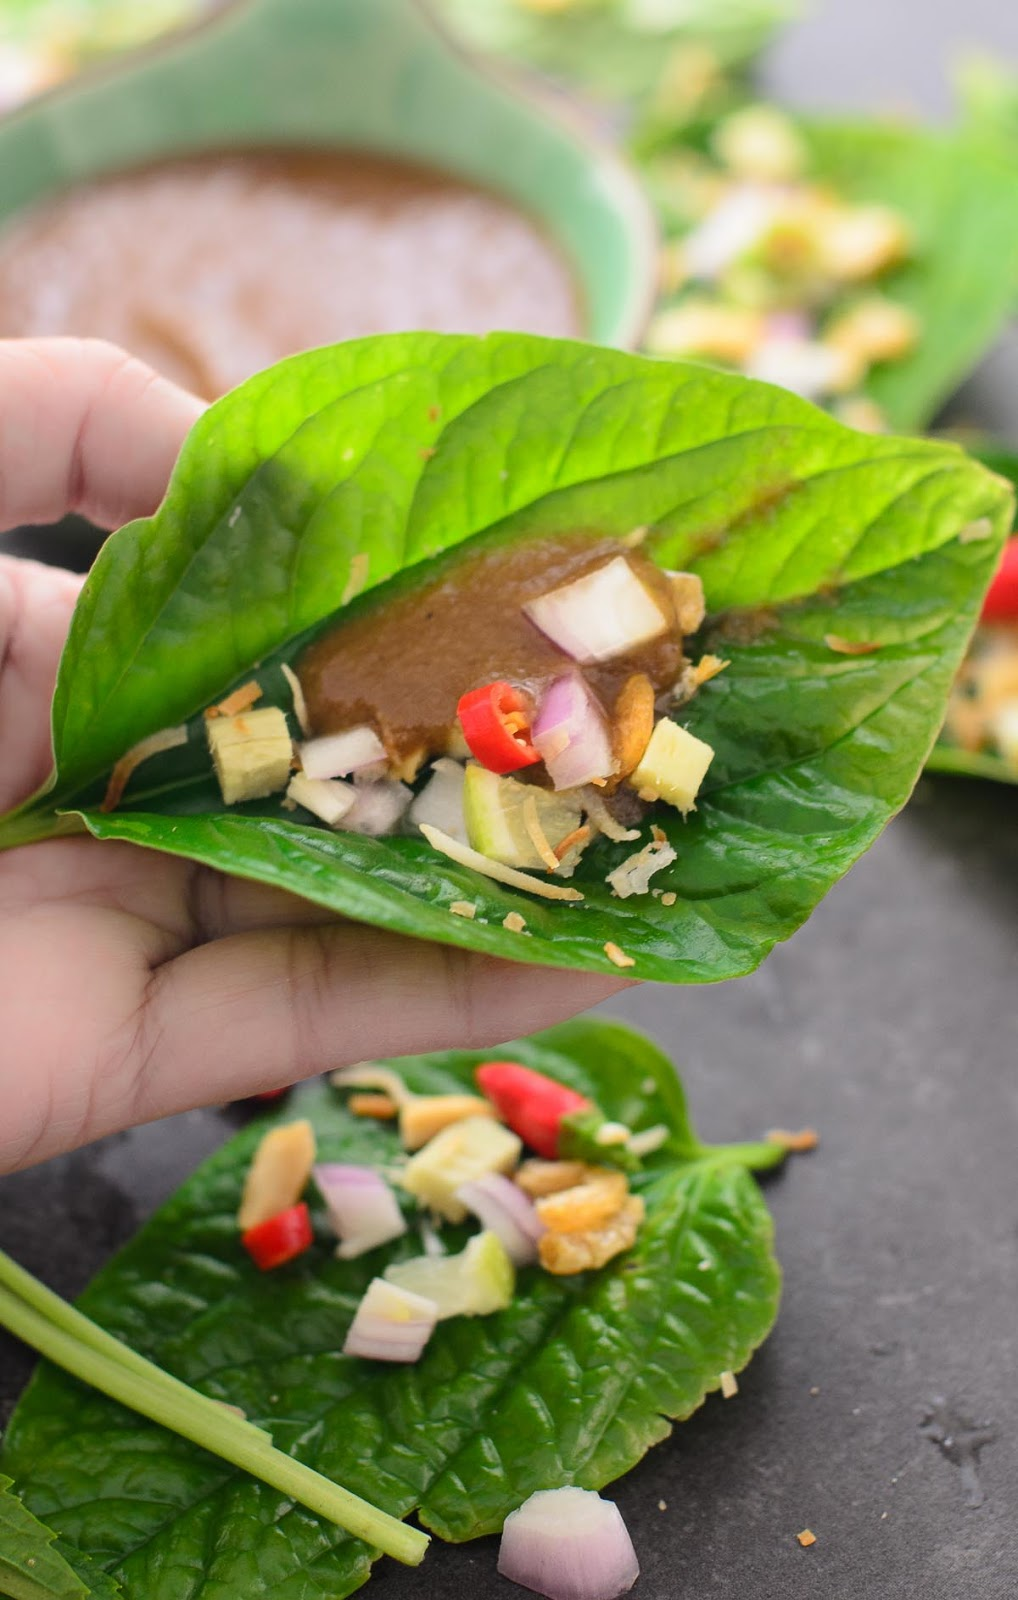 How to eat Miang Kham